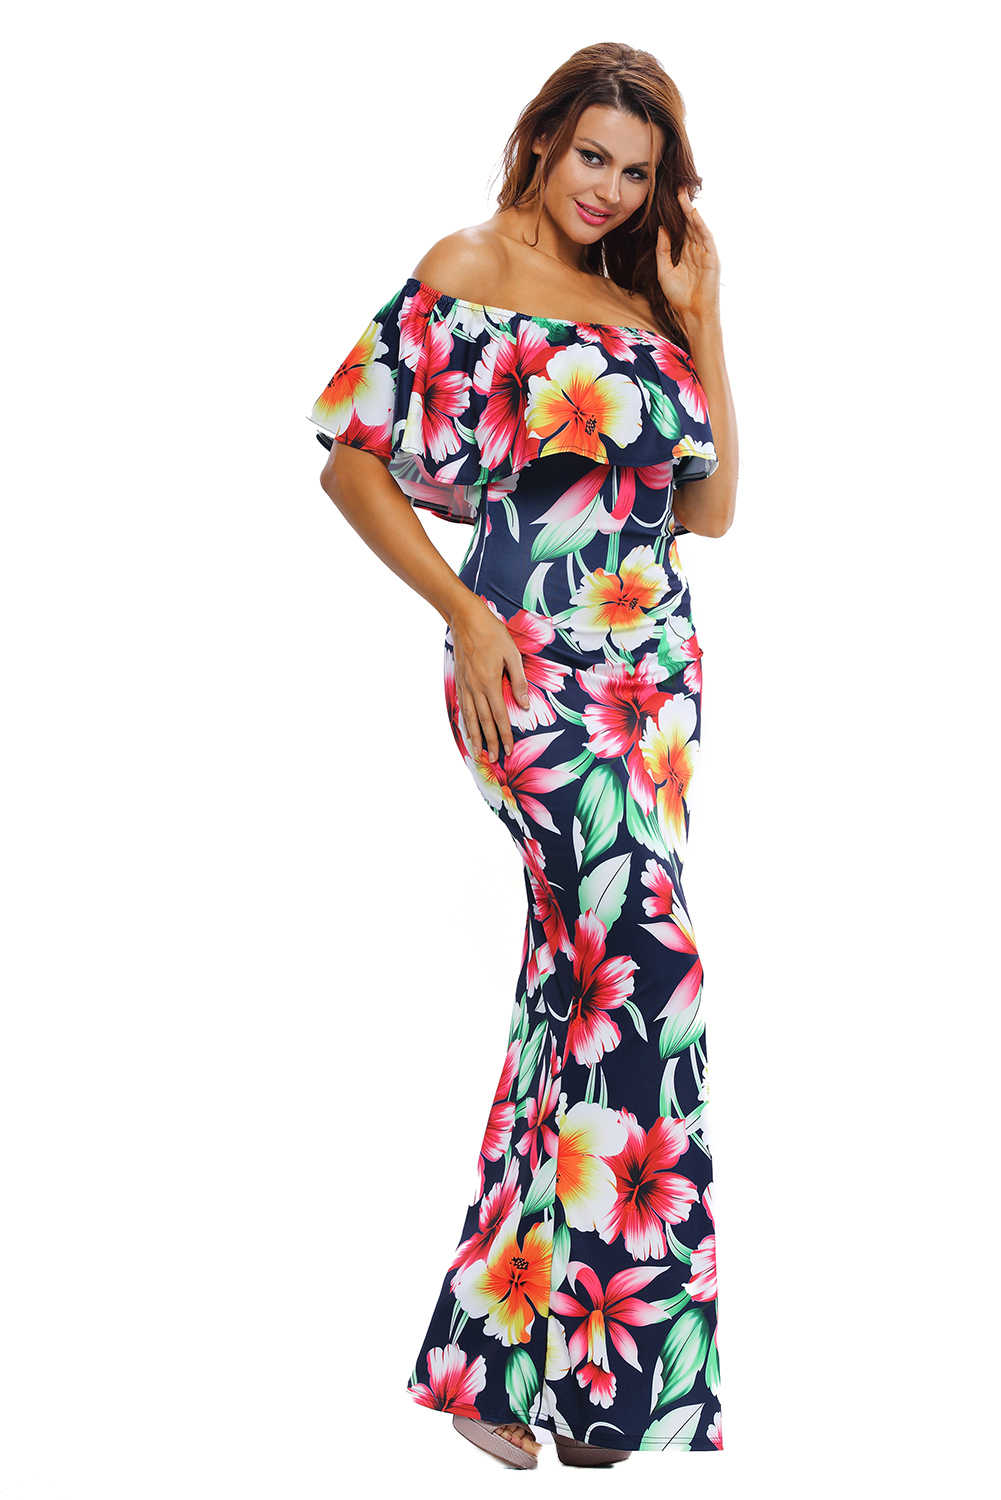 54ccac1685ef9 ... Women Sexy Tropical Roses Print Dress Ruffles Off Shoulder Maxi Dress  Strapless Elegant Summer Beach Dress ...